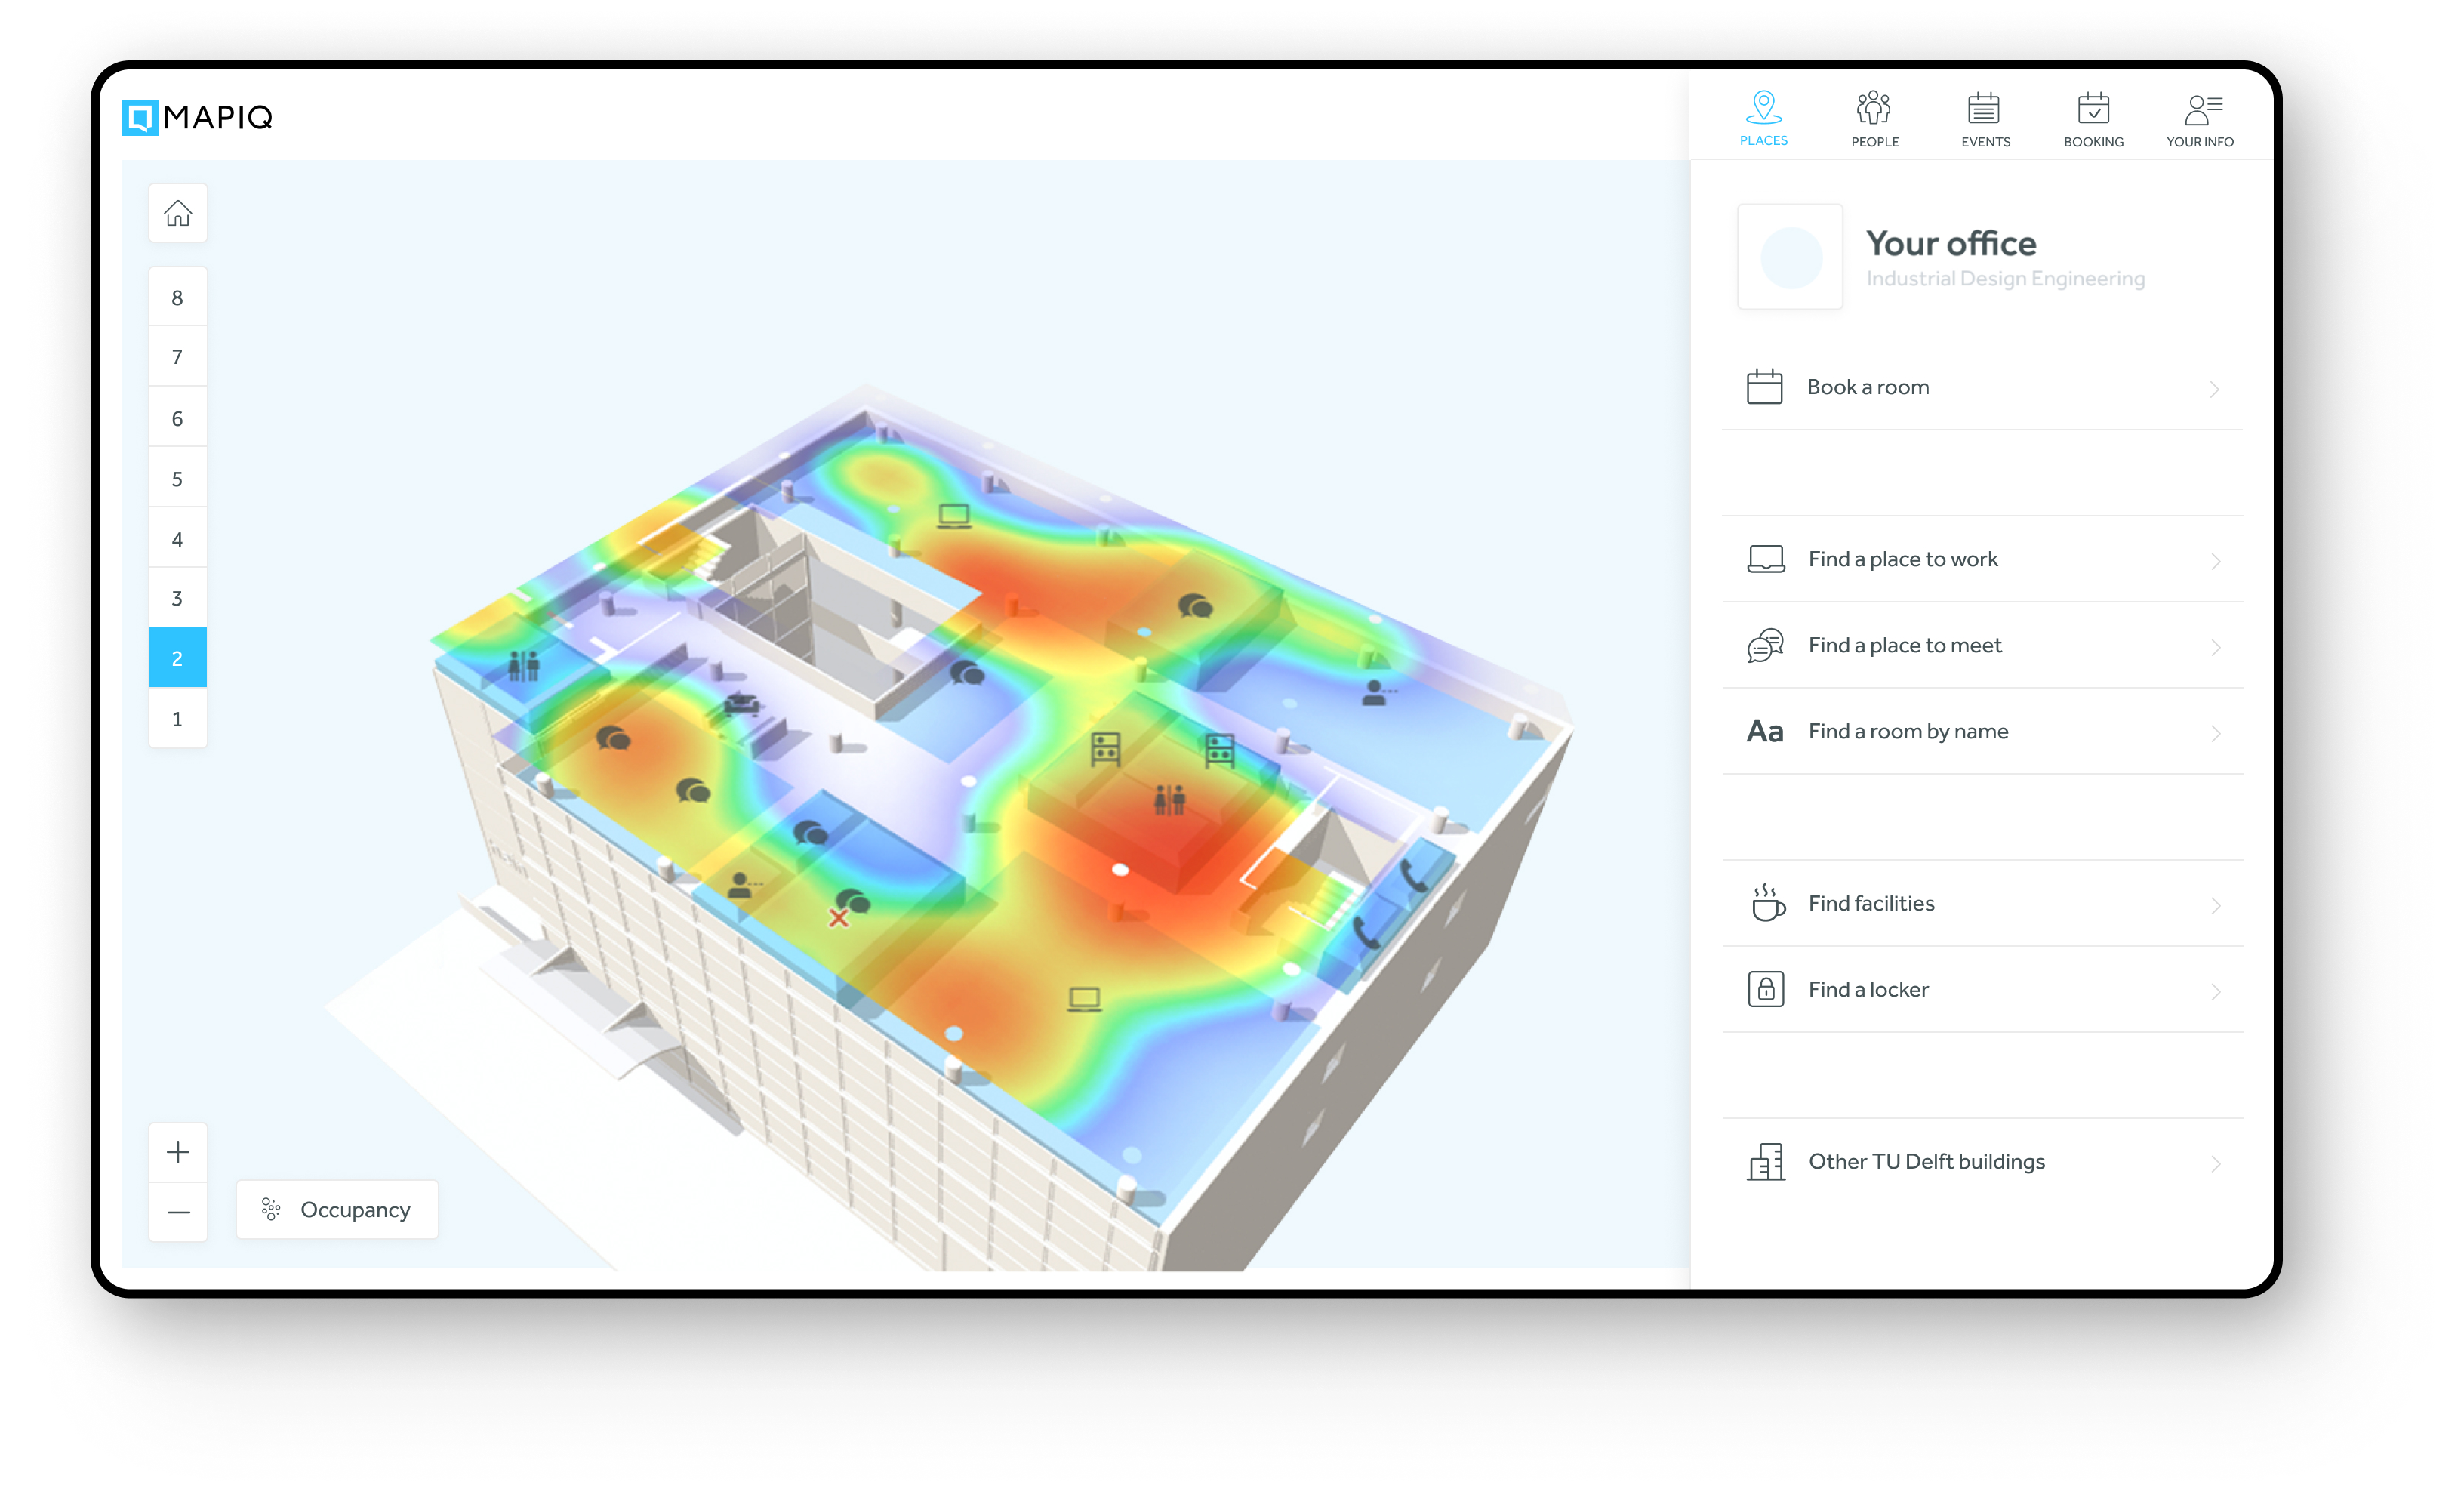 Say goodbye to your office's overcrowded areas, visualize in real-time how employees are using the office and make informed real-estate decisions.